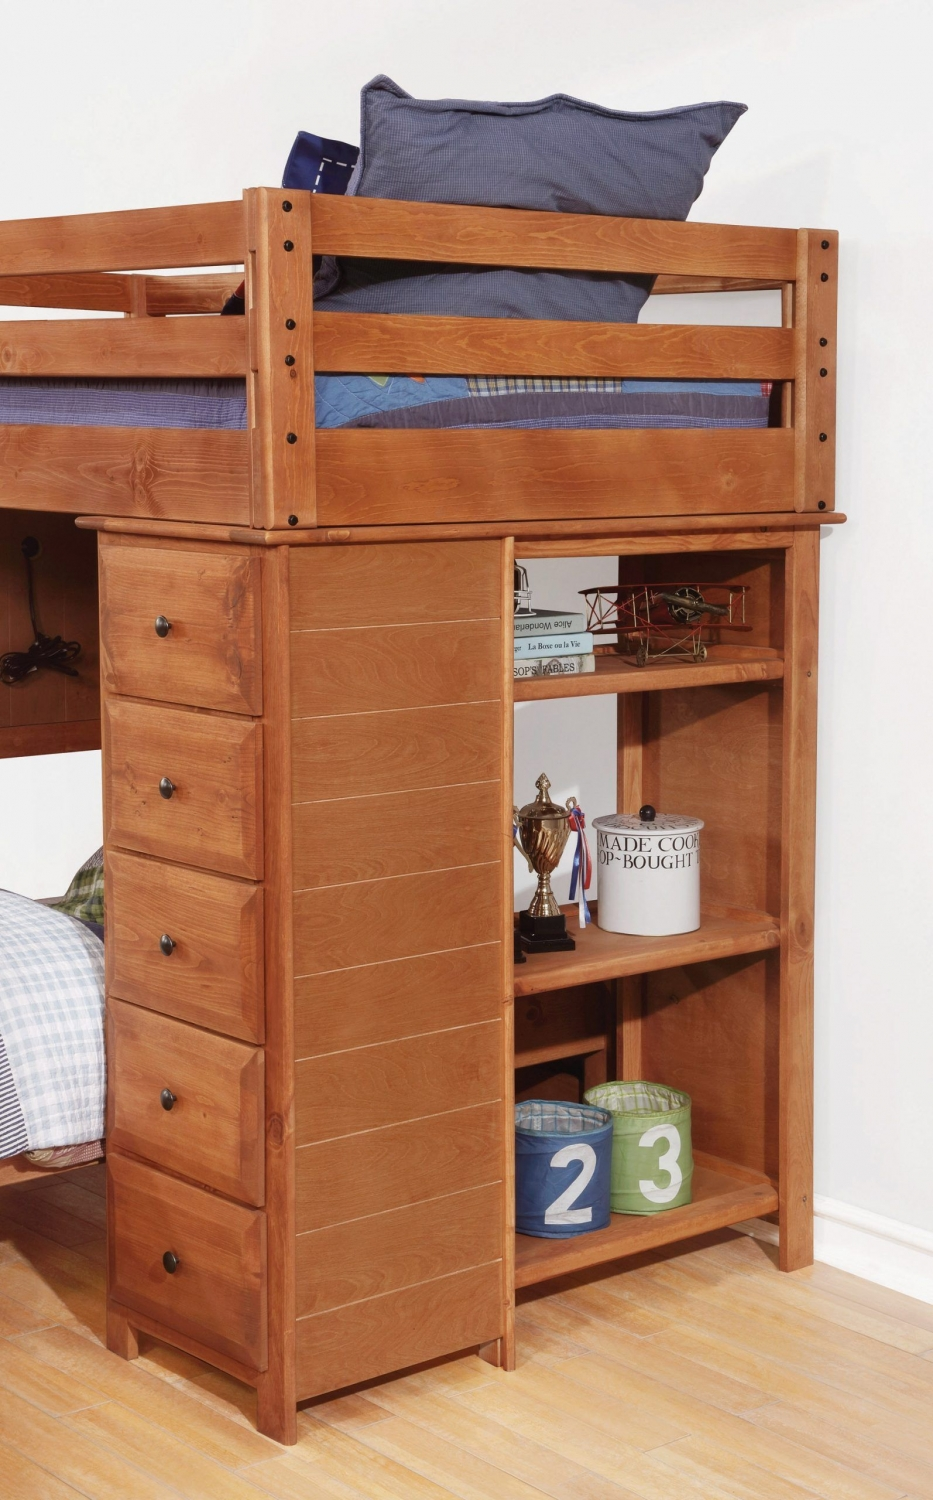 Wondrous Bunk Bed with Desk and Drawers On